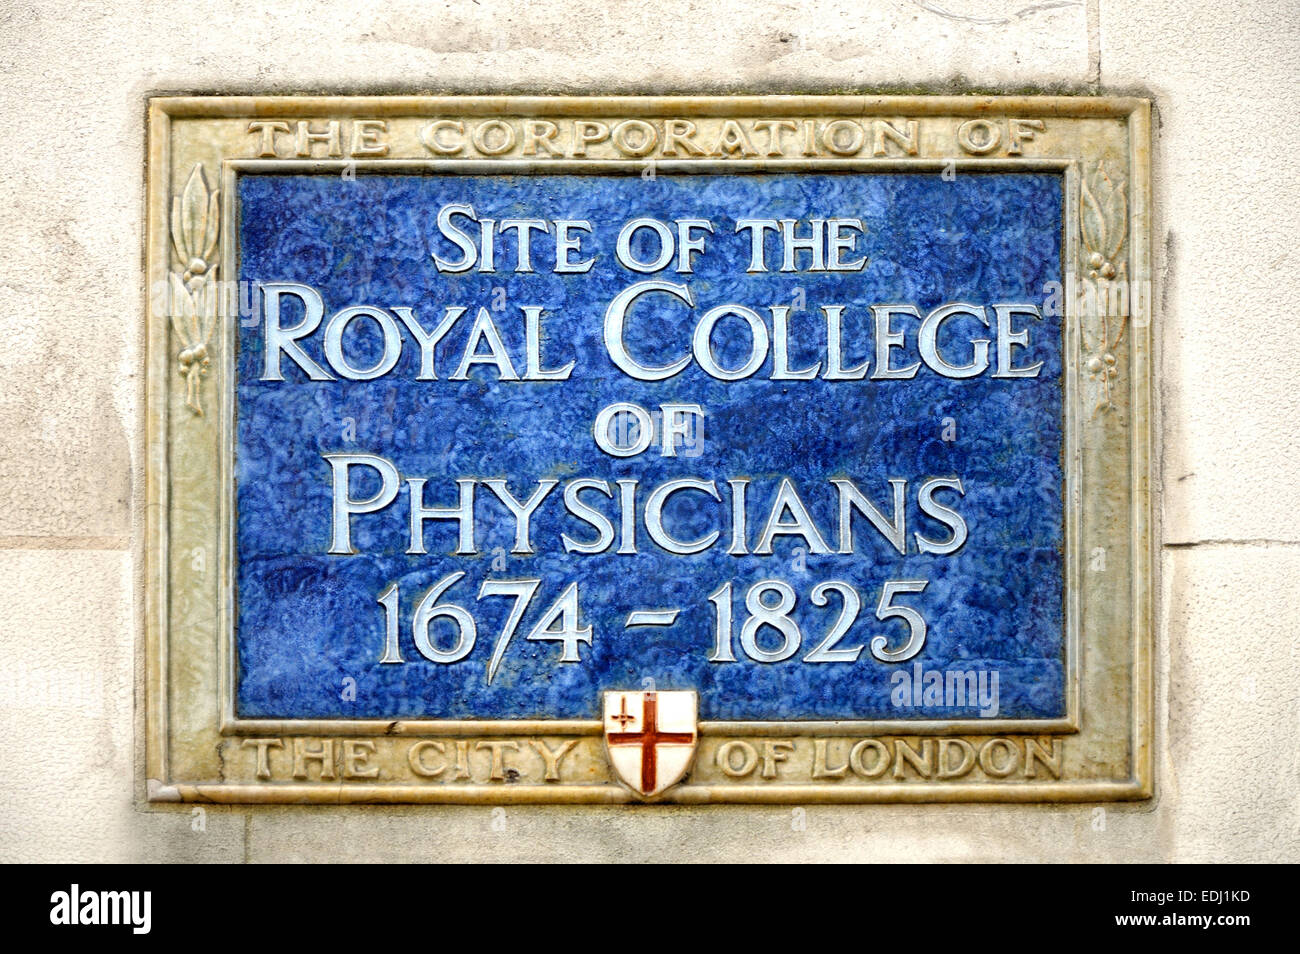 London, England, UK. Plaque commemorating the site of the Royal College of Physicians 1674-1825 in Warwick Lane, - Stock Image